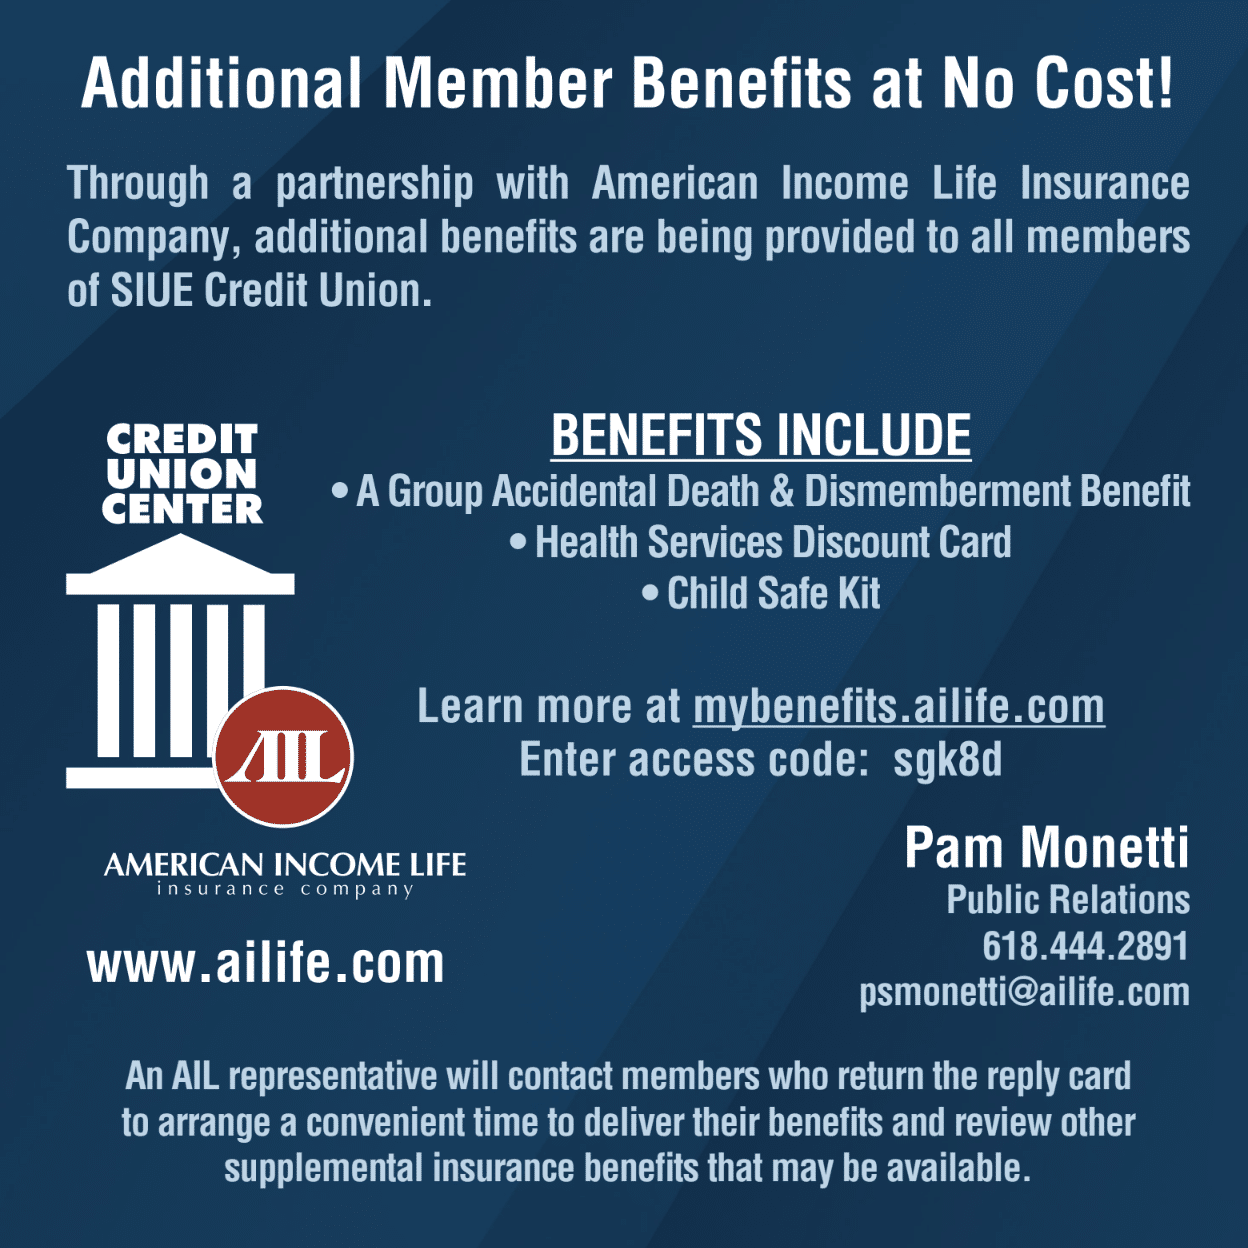 Additional Member benefits at no cost. https://mybenefits.ailife.com/